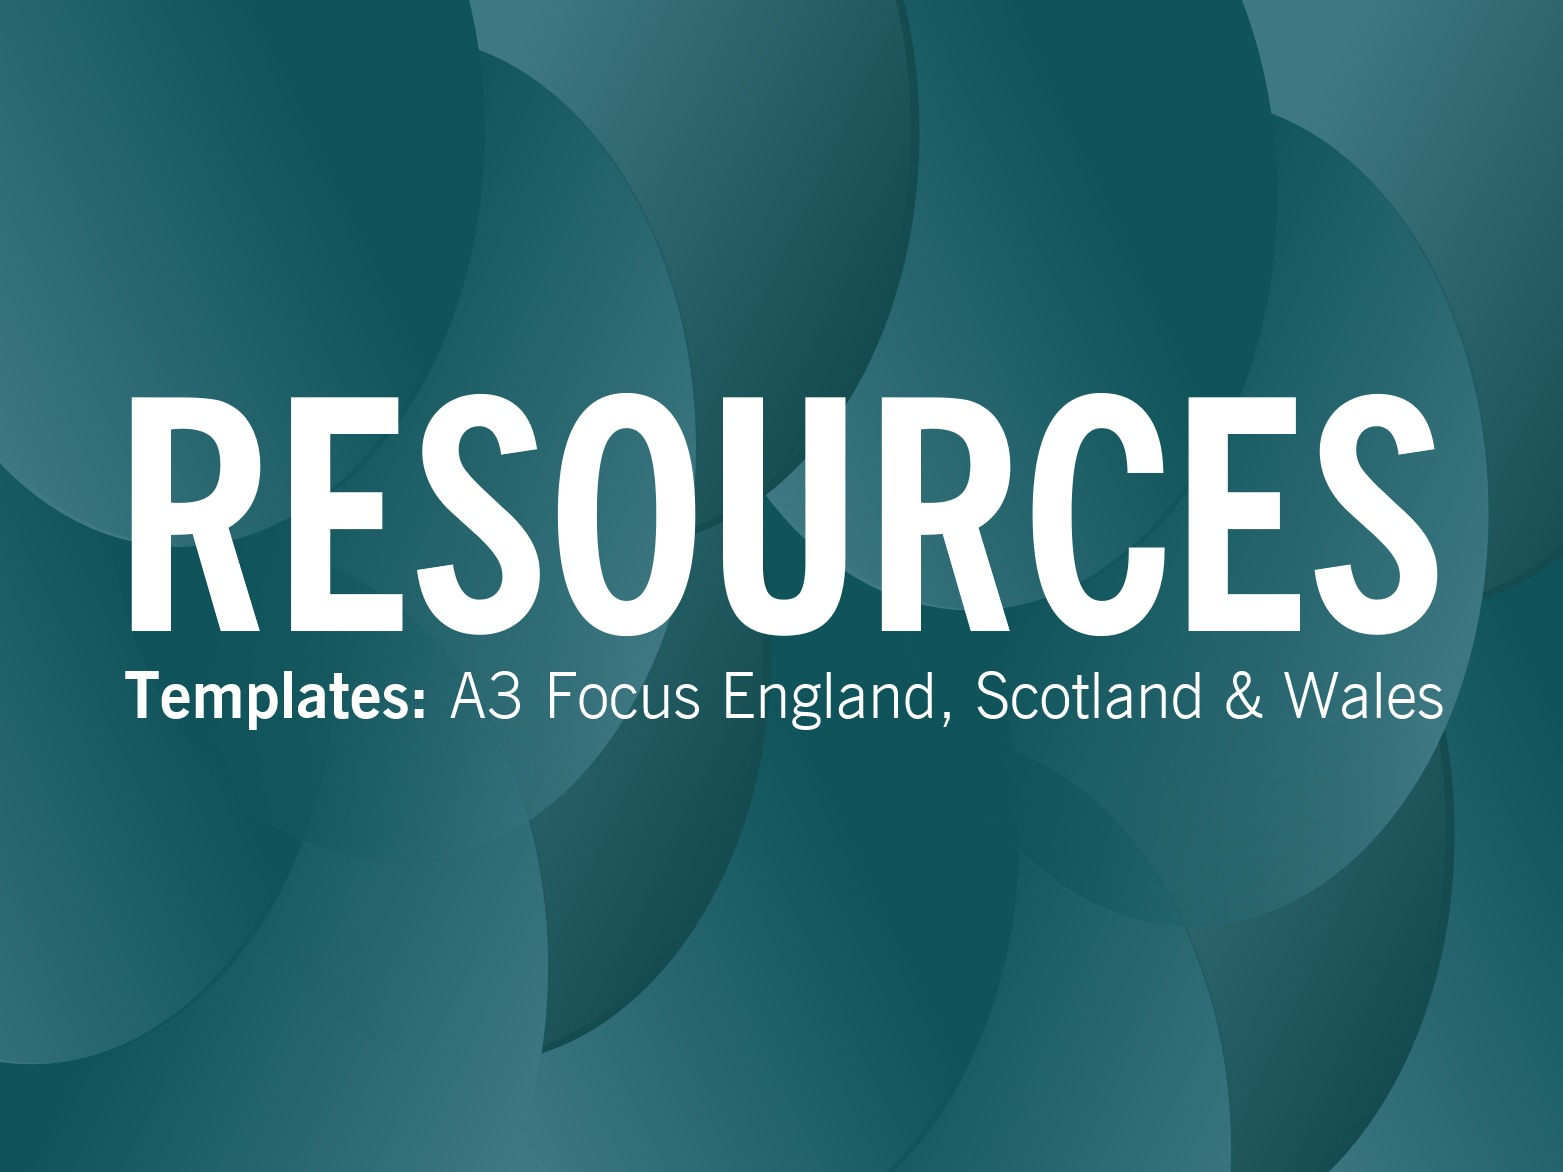 RESOURCE: New A3 Focus Templates